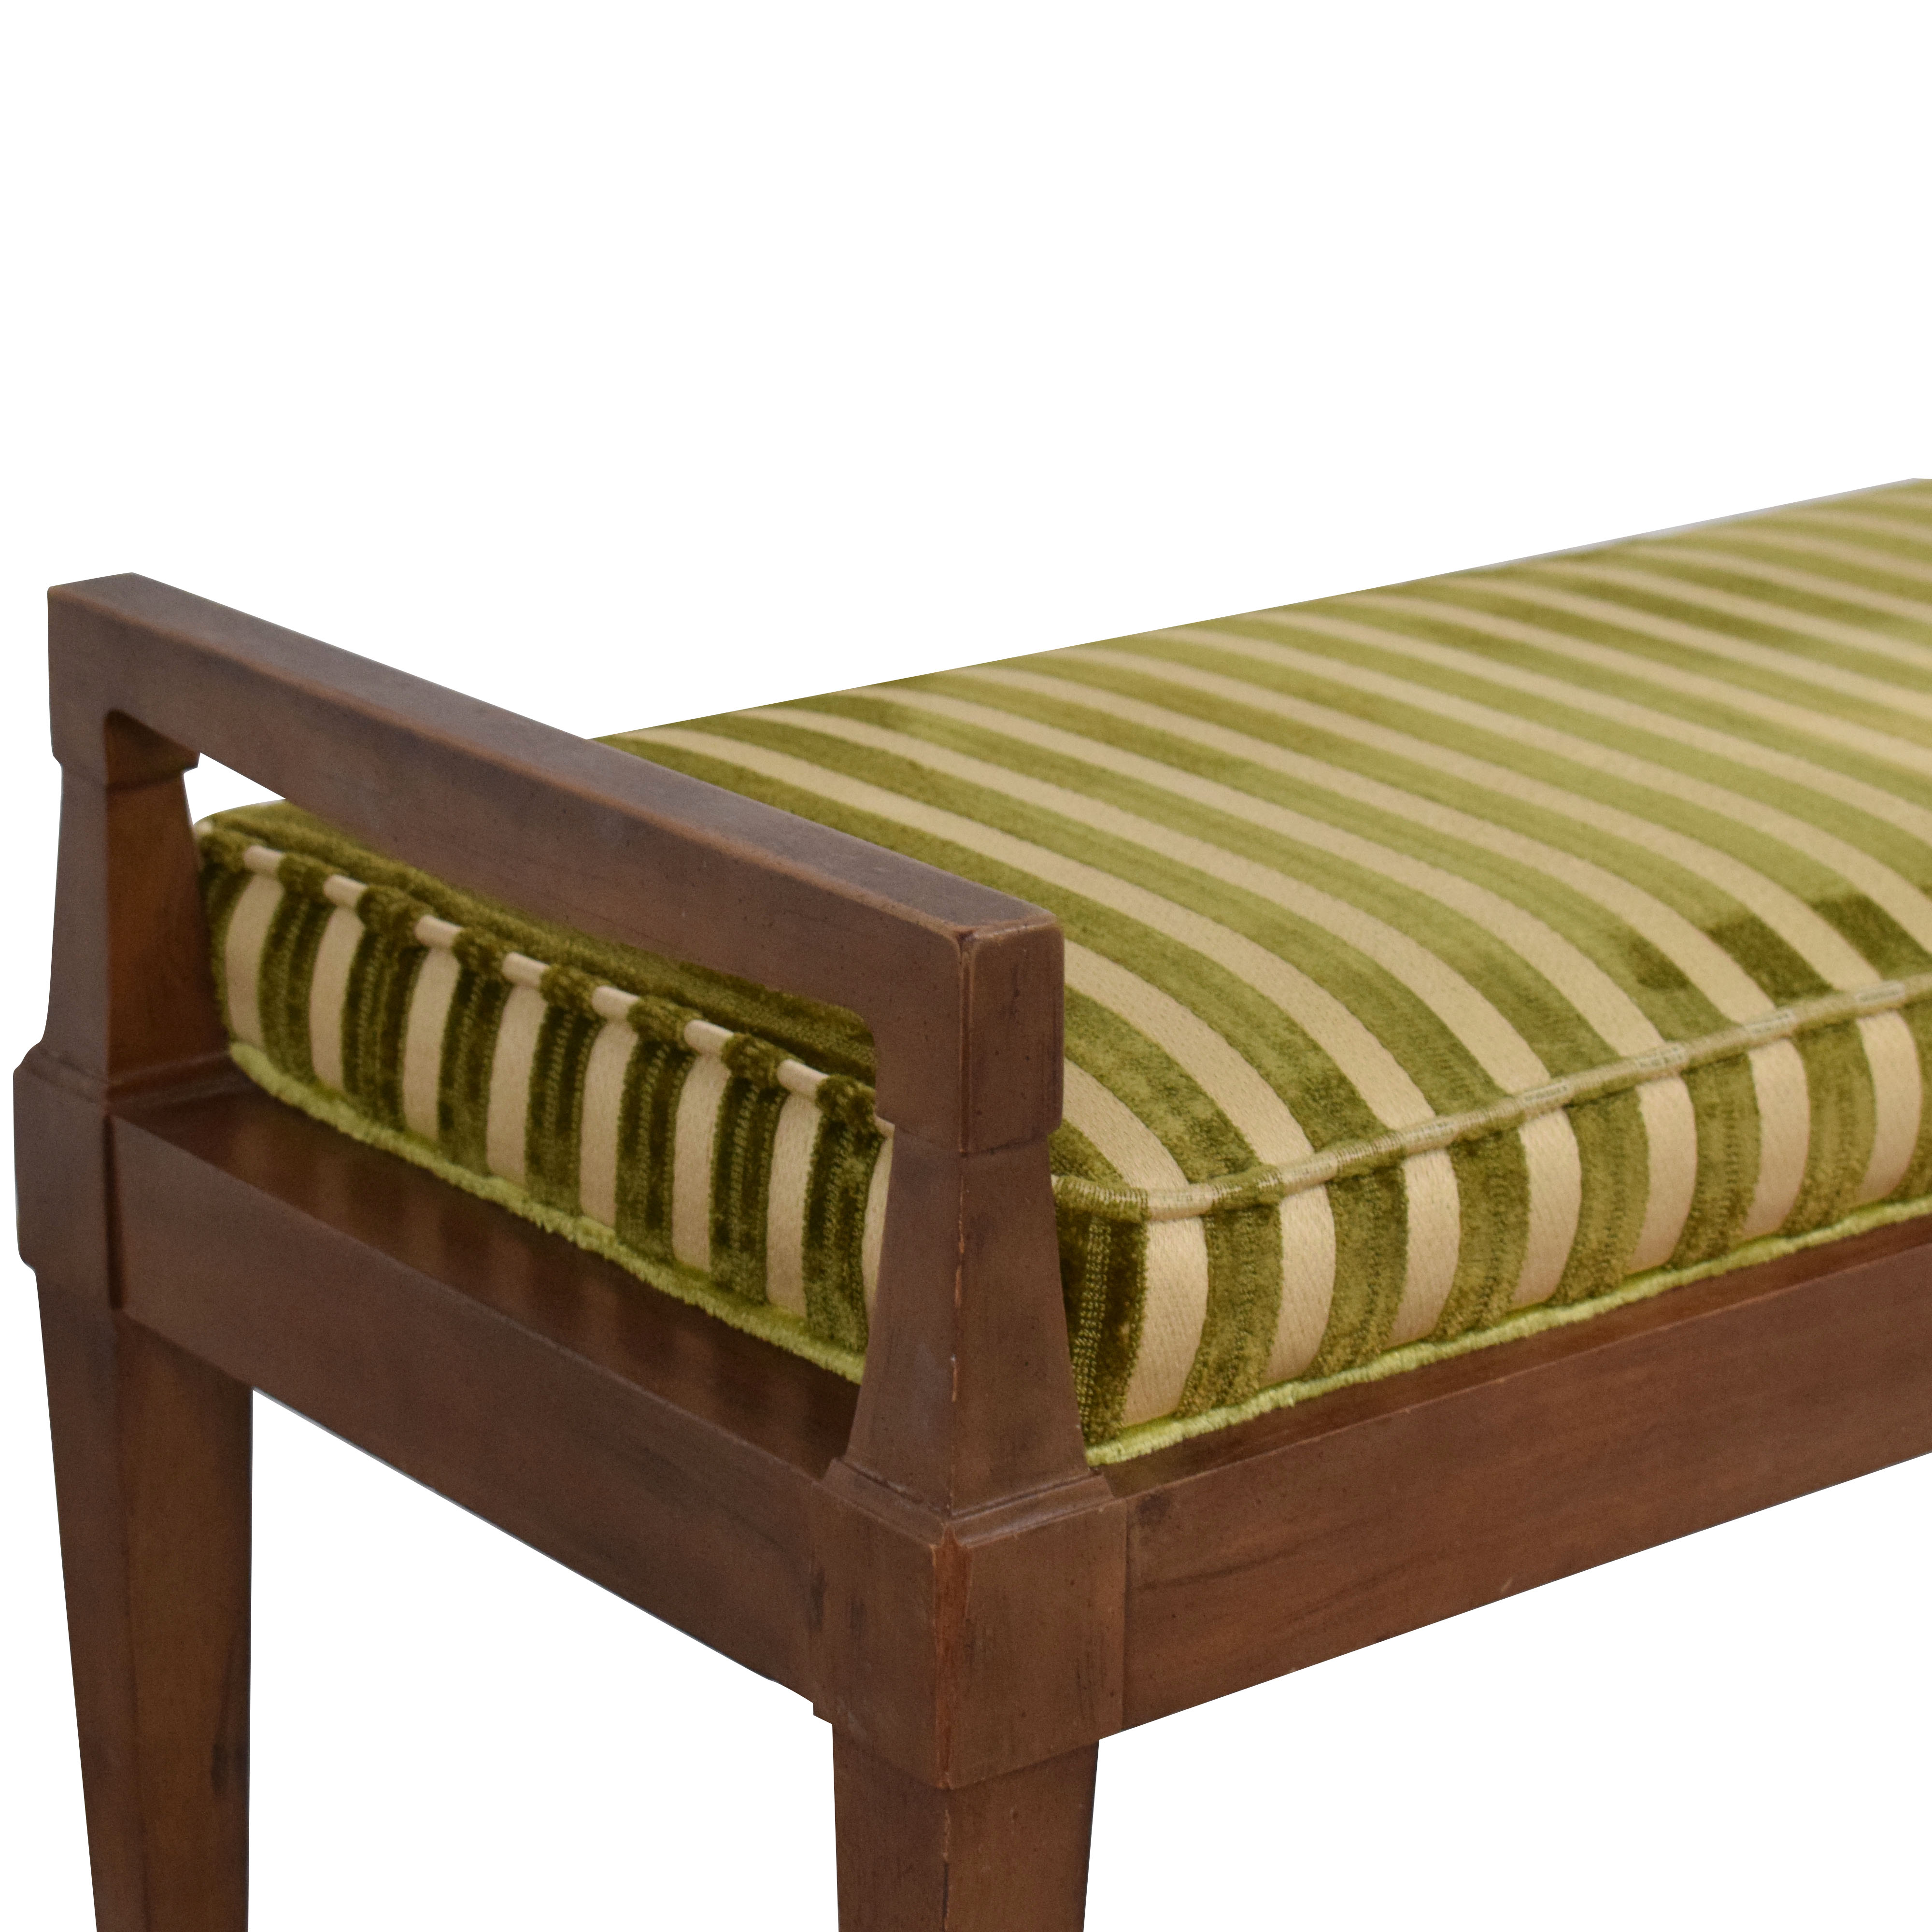 Drexel Vintage Drexel Cushioned Bench nyc